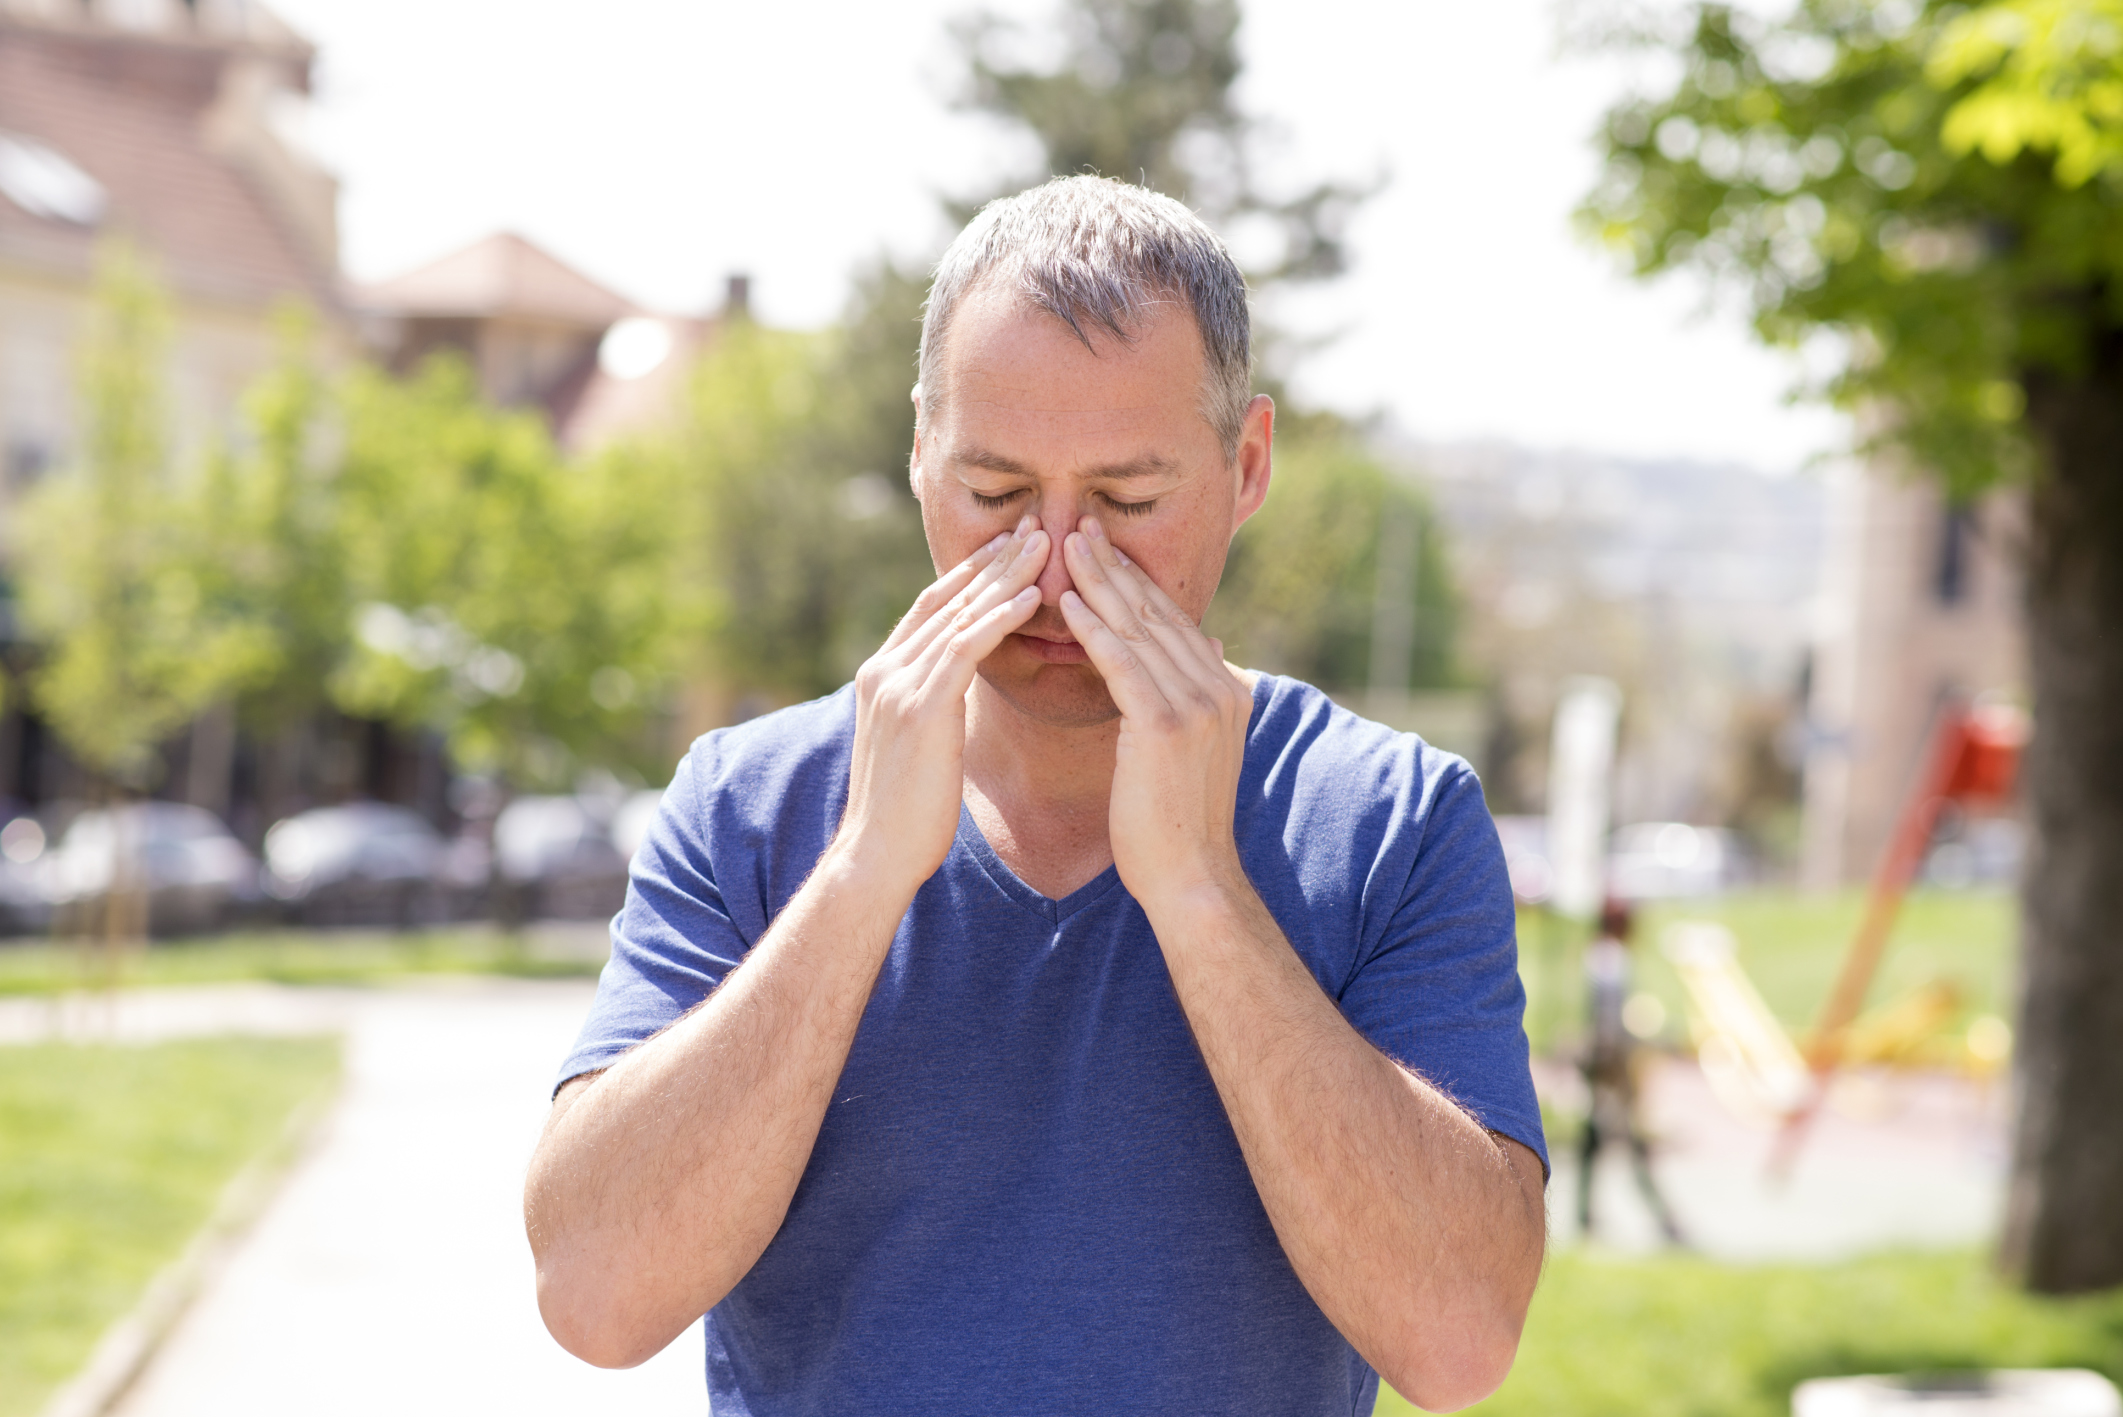 Can Acid Reflux Cause Sinus Pain? | LIVESTRONG.COM